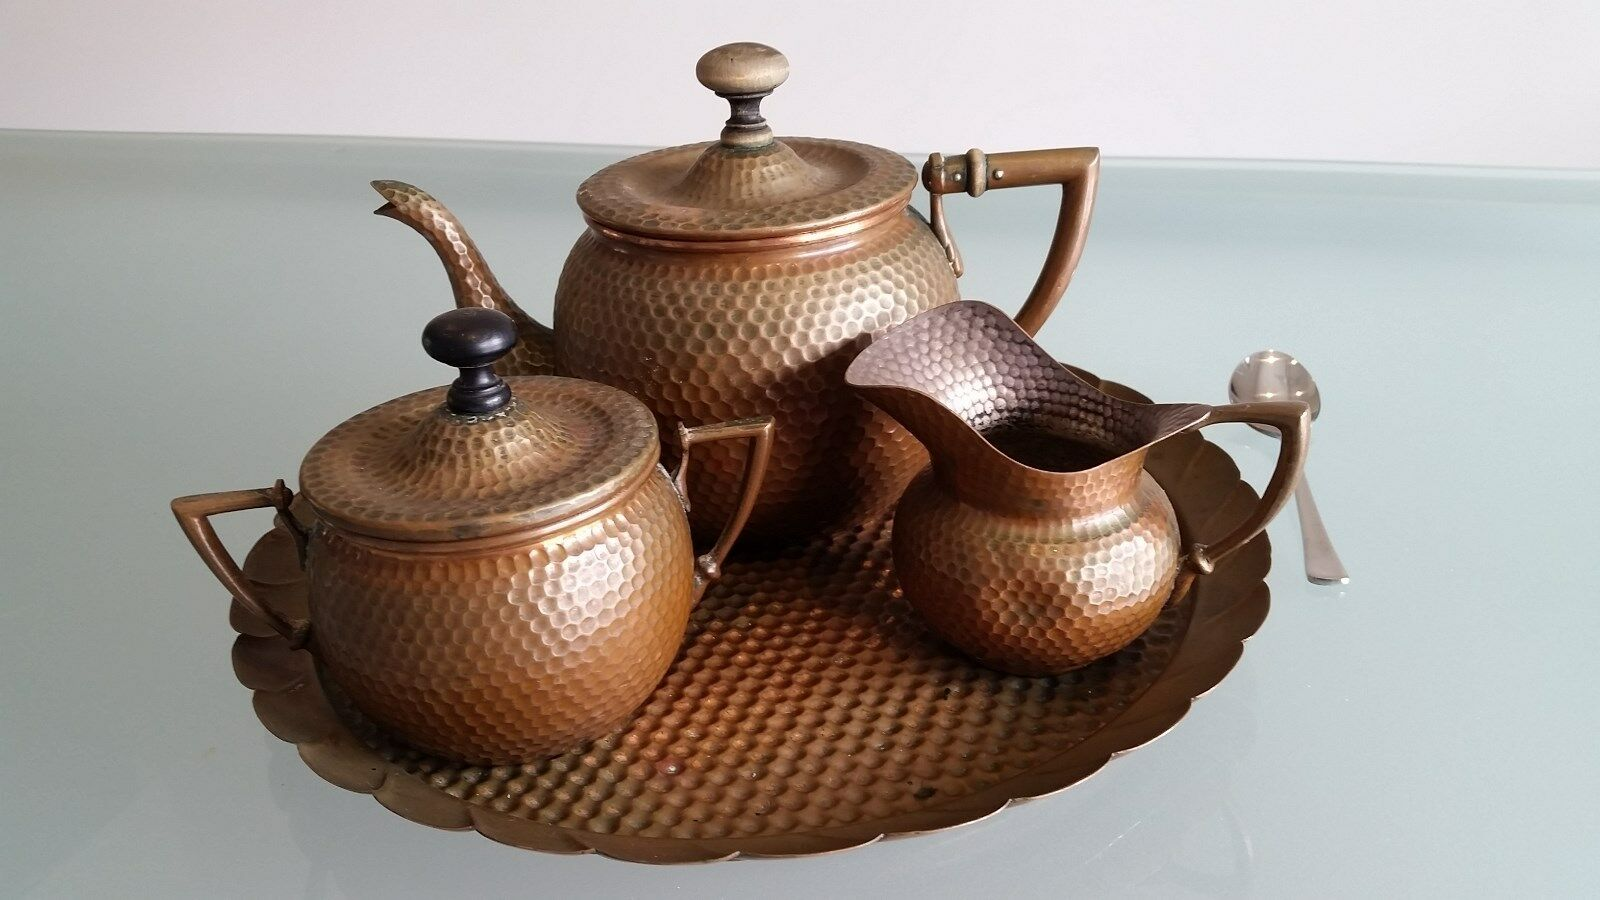 JOSEPH SANKEY & SONS ANTIQUE 4 PIECE COPPER TEA SEVICE (c1900), ORIGINAL. LOOK !